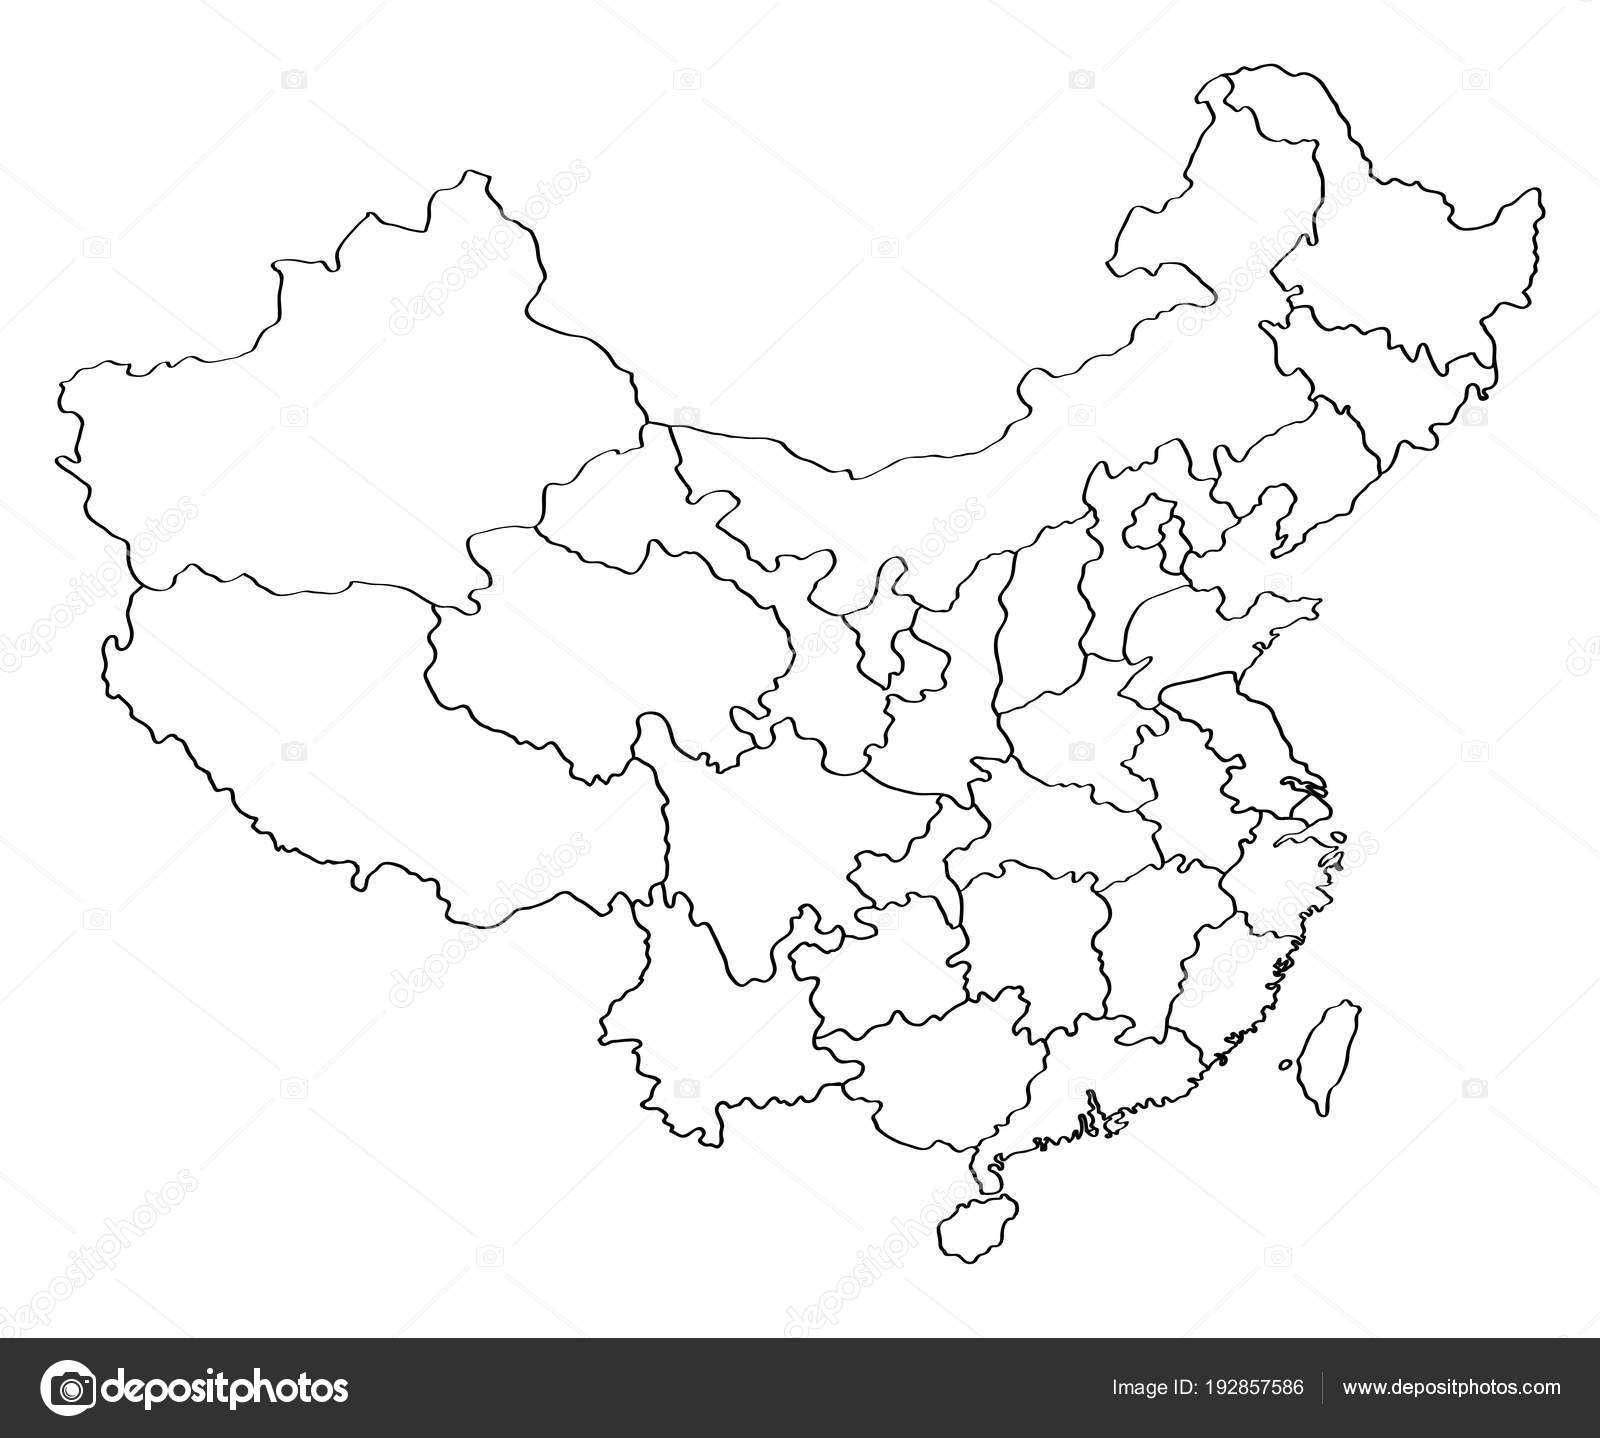 Outline Map China — Stock Vector © BlackLava36 #192857586